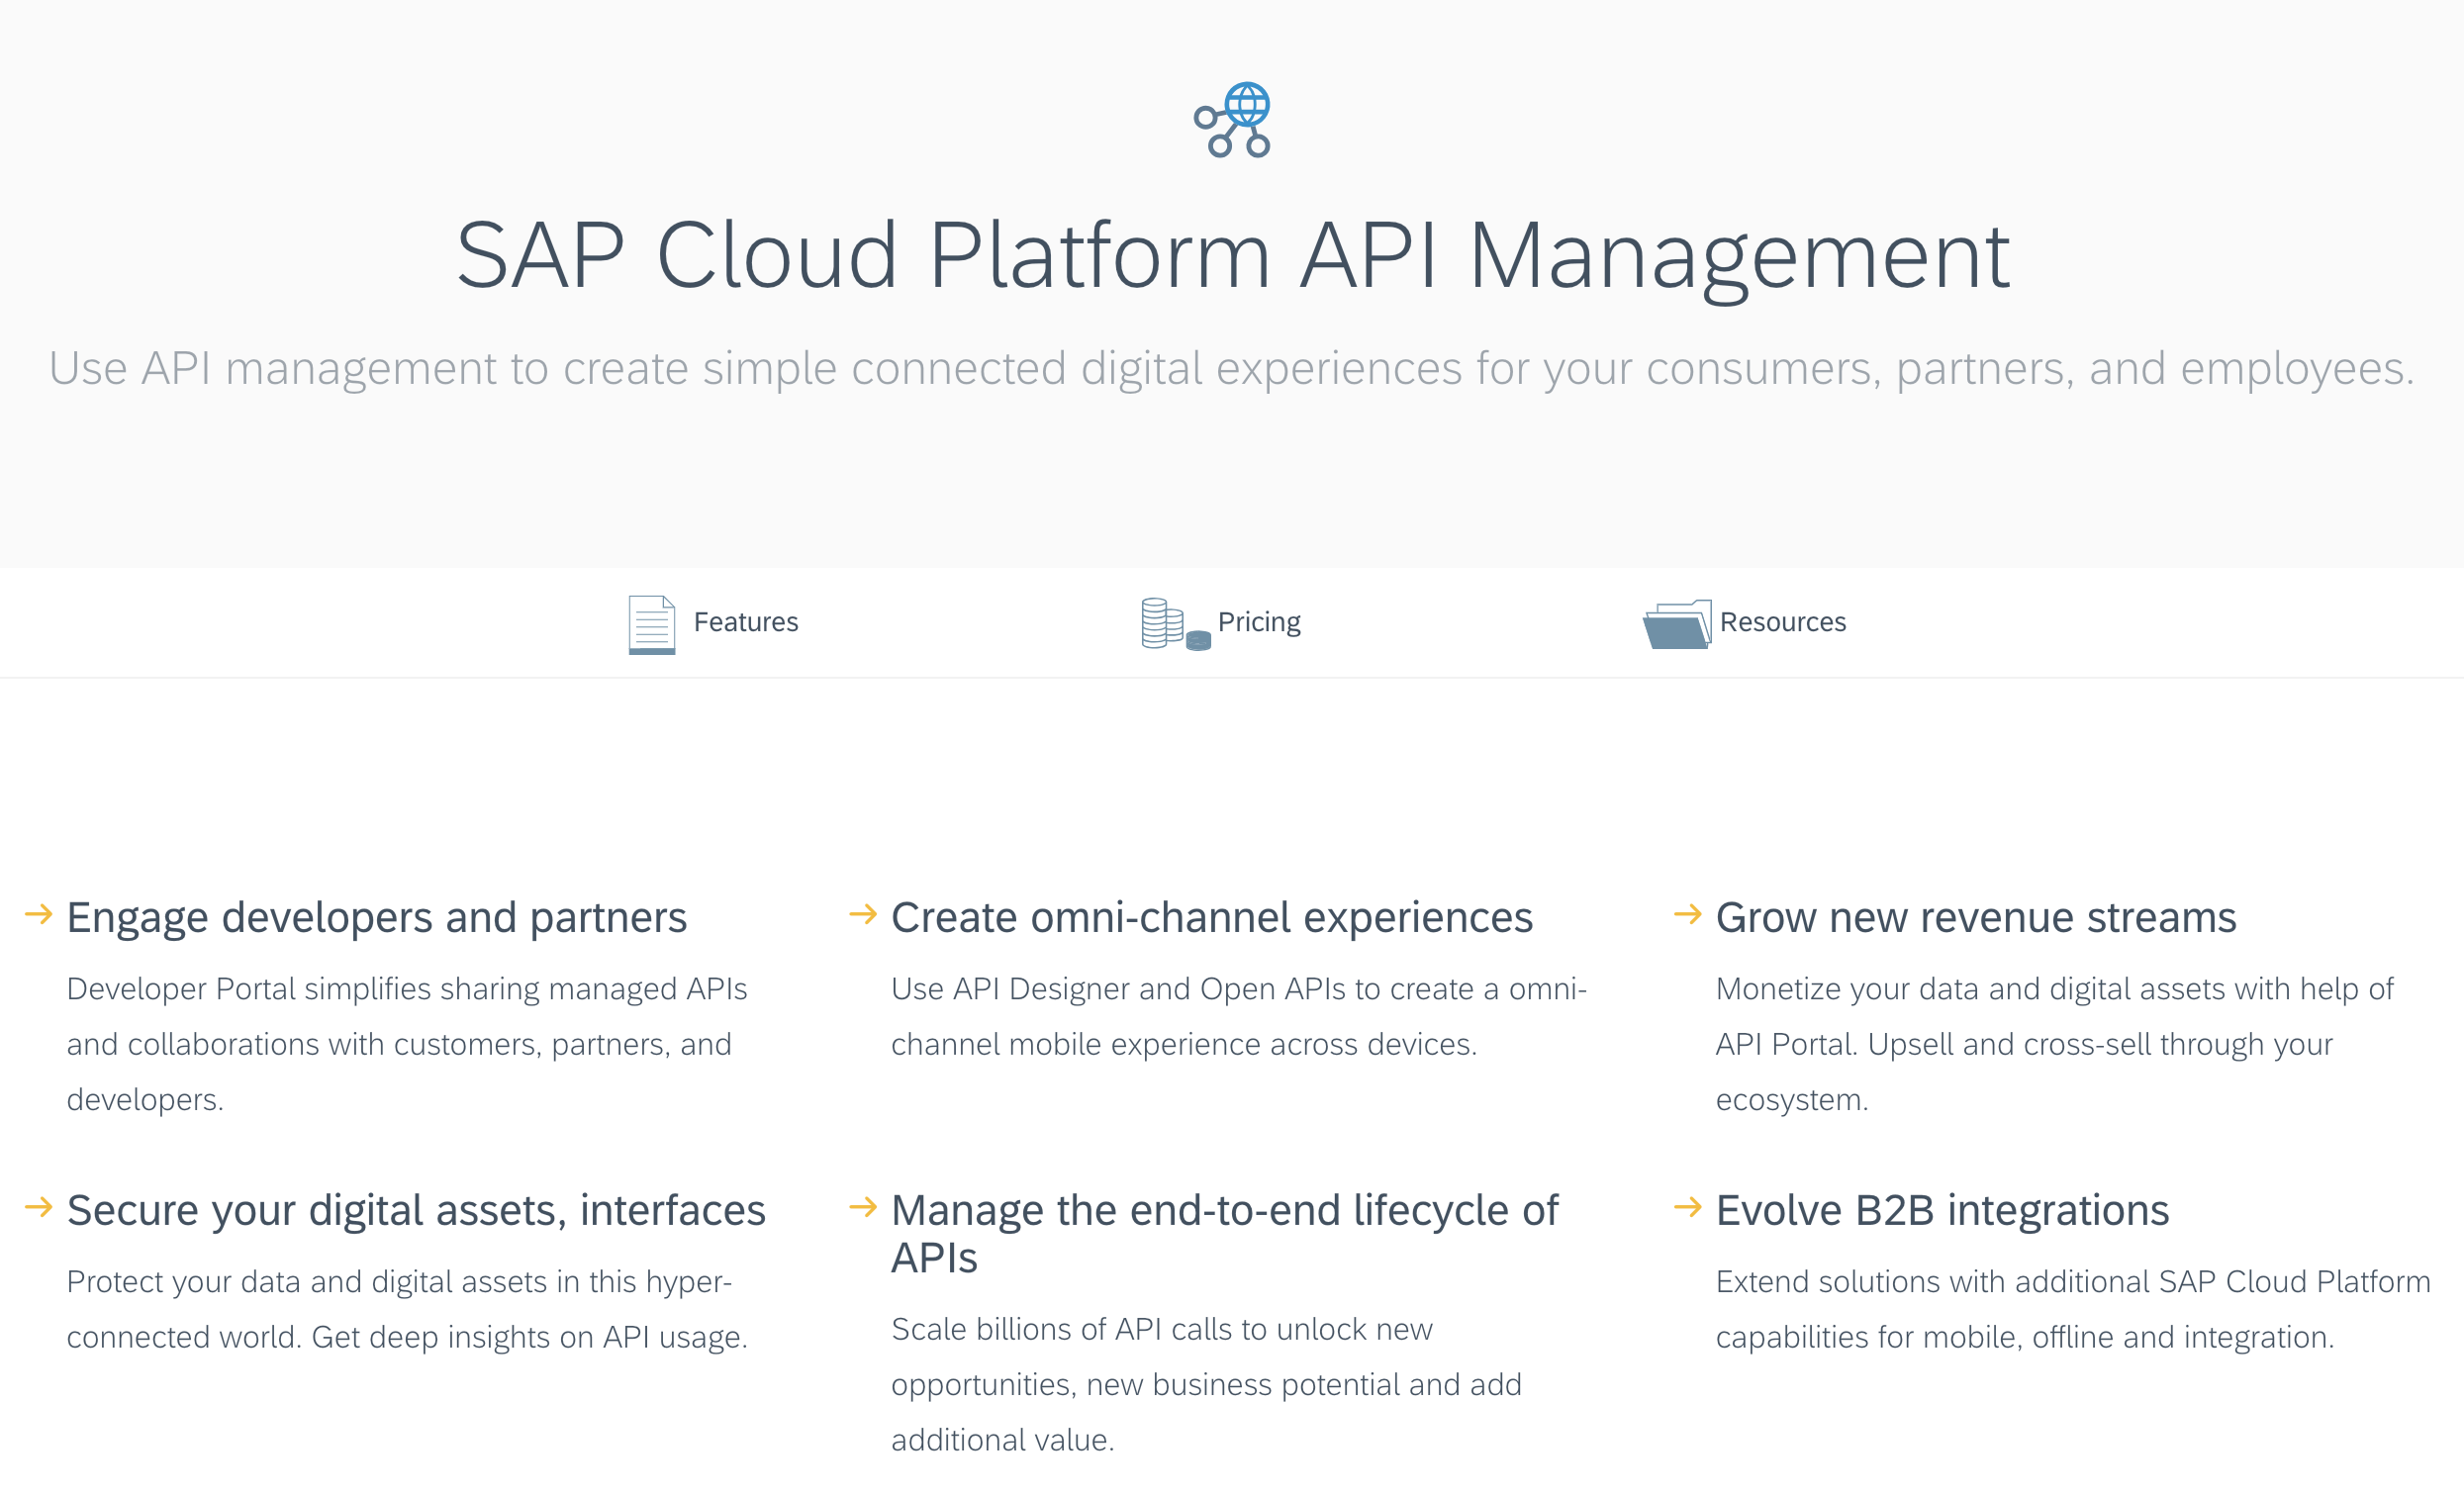 From API to App: Assistant tool generates mobile app scaffolding